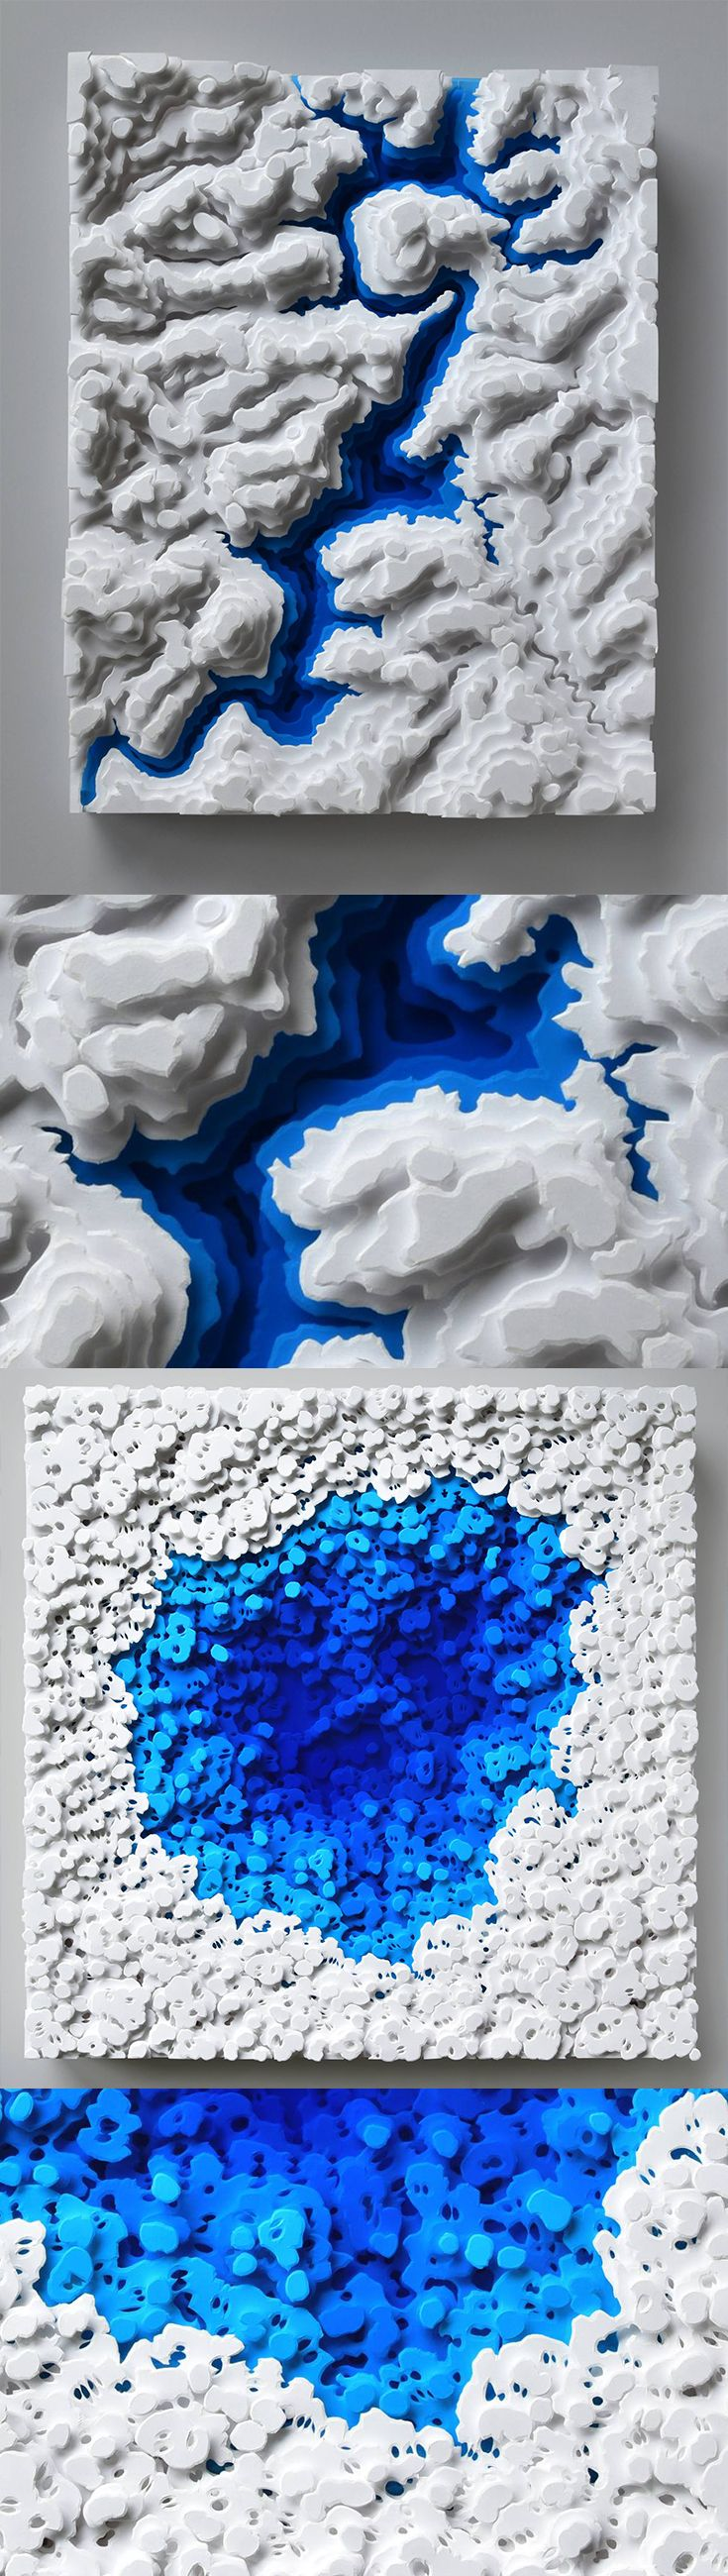 Click for more pics! | Topographic Water Patterns by Olga Skorokhod #paperart #papercut